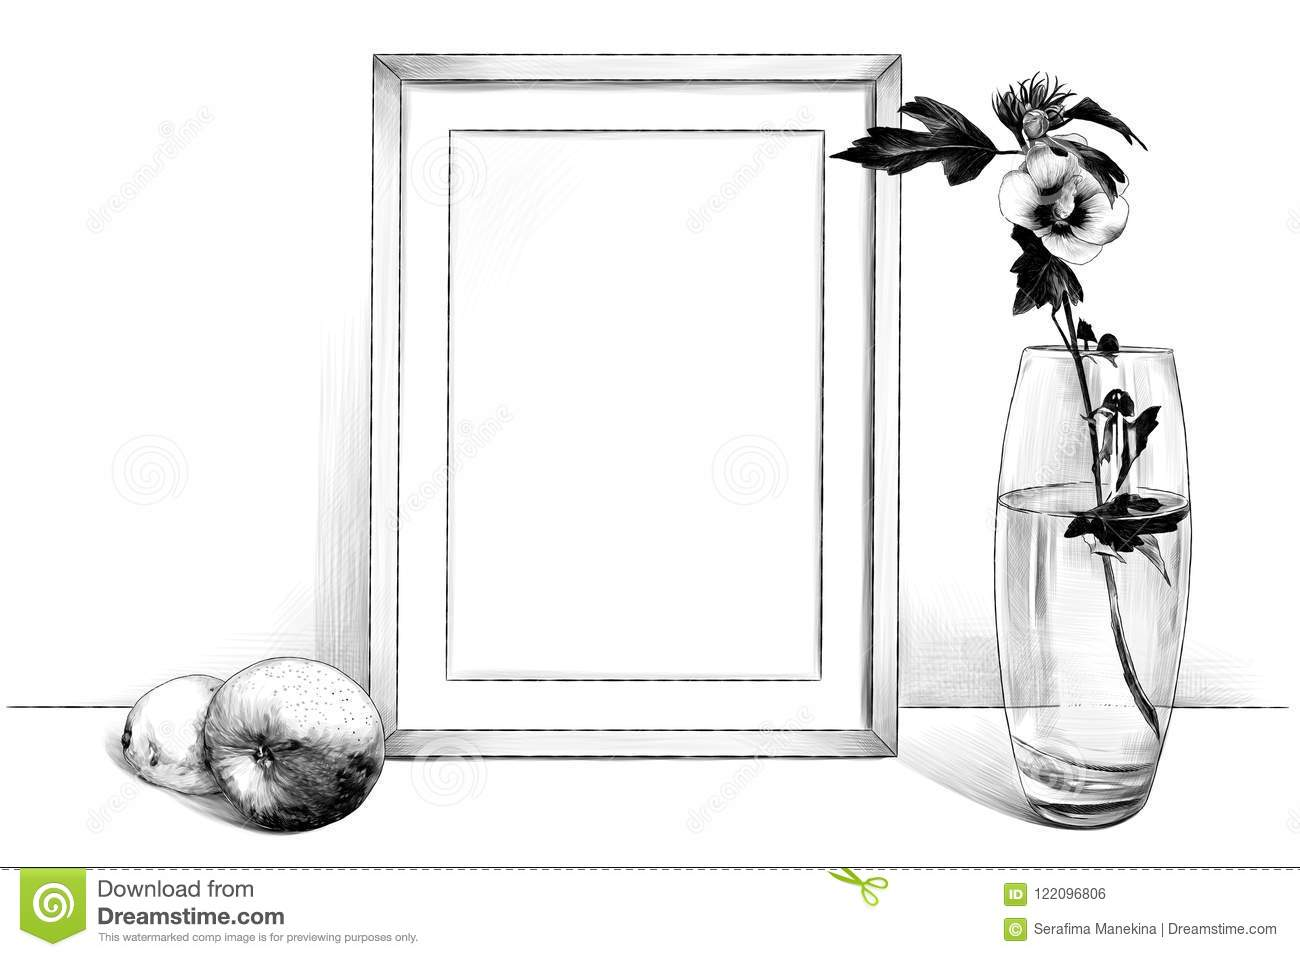 template picture in frame standing on the table next to a glass vase